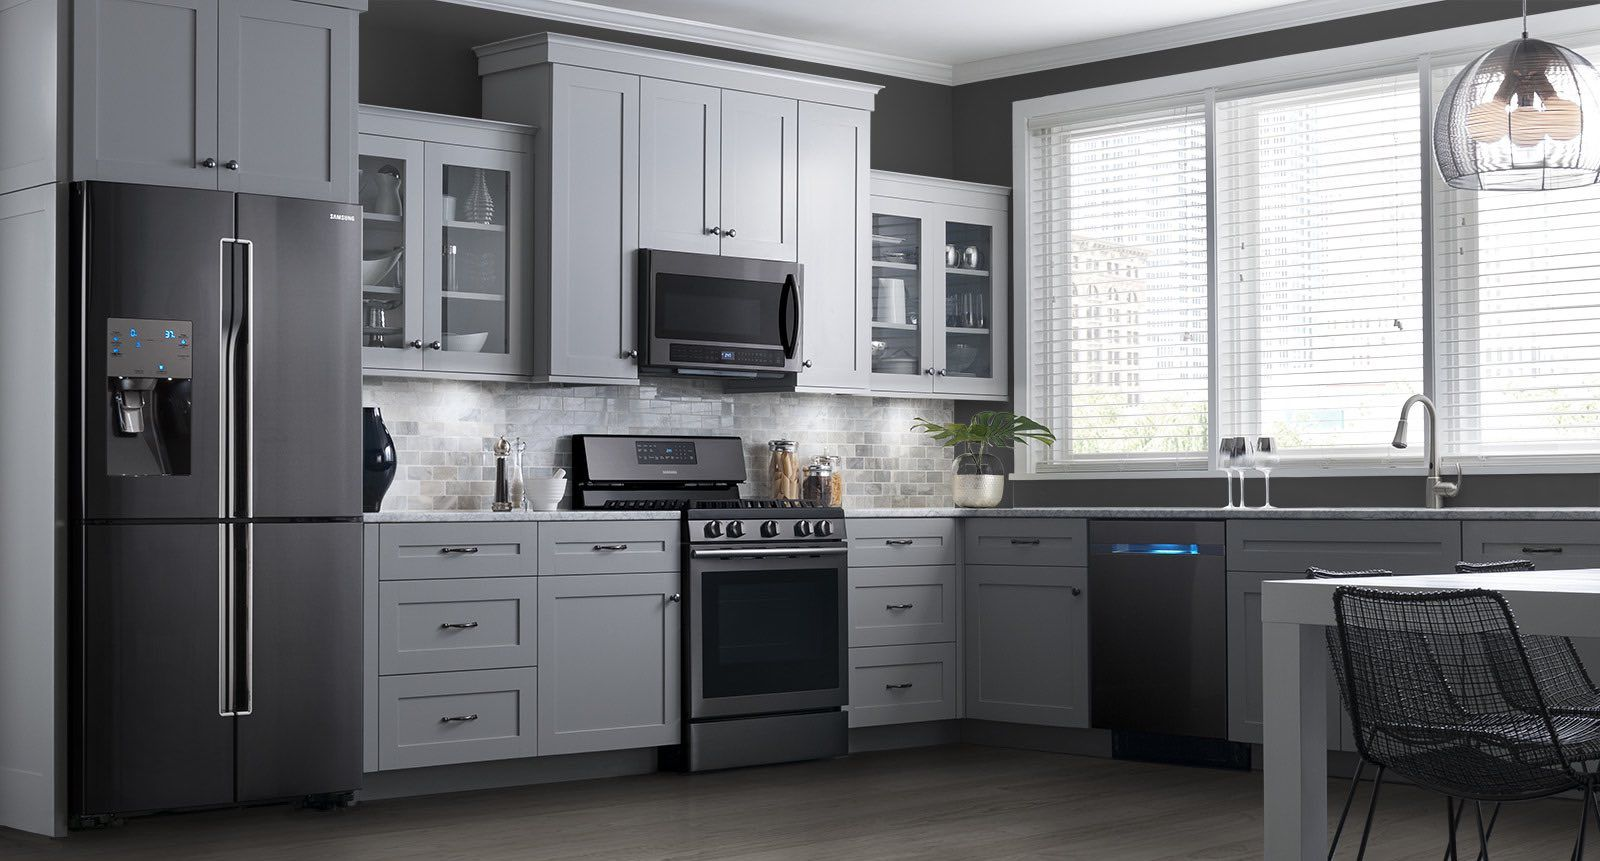 Kitchen appliance colors 2016 - New Appliances Sinks And Lighting For 2016